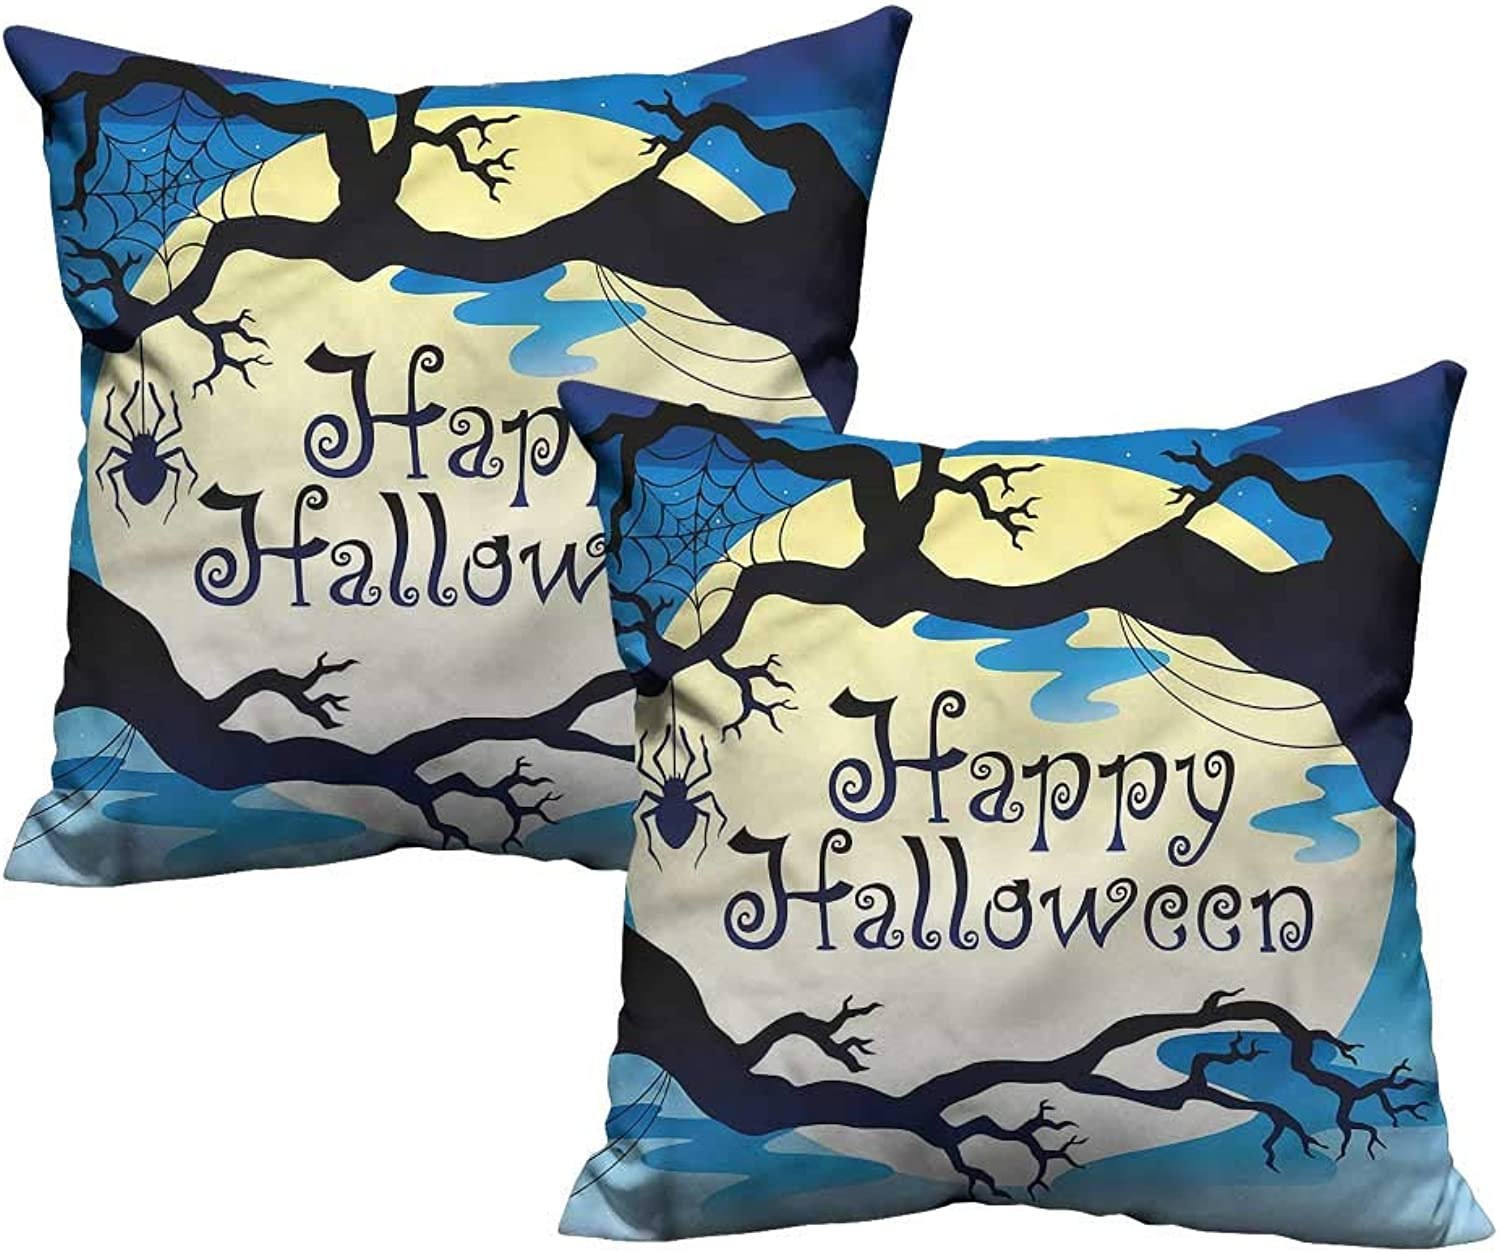 ParadiseDecor Halloween,Square Pillowcase Spooky Night with Moon 24 x 24 x2 Soft Toddler Pillowcases Set of 2